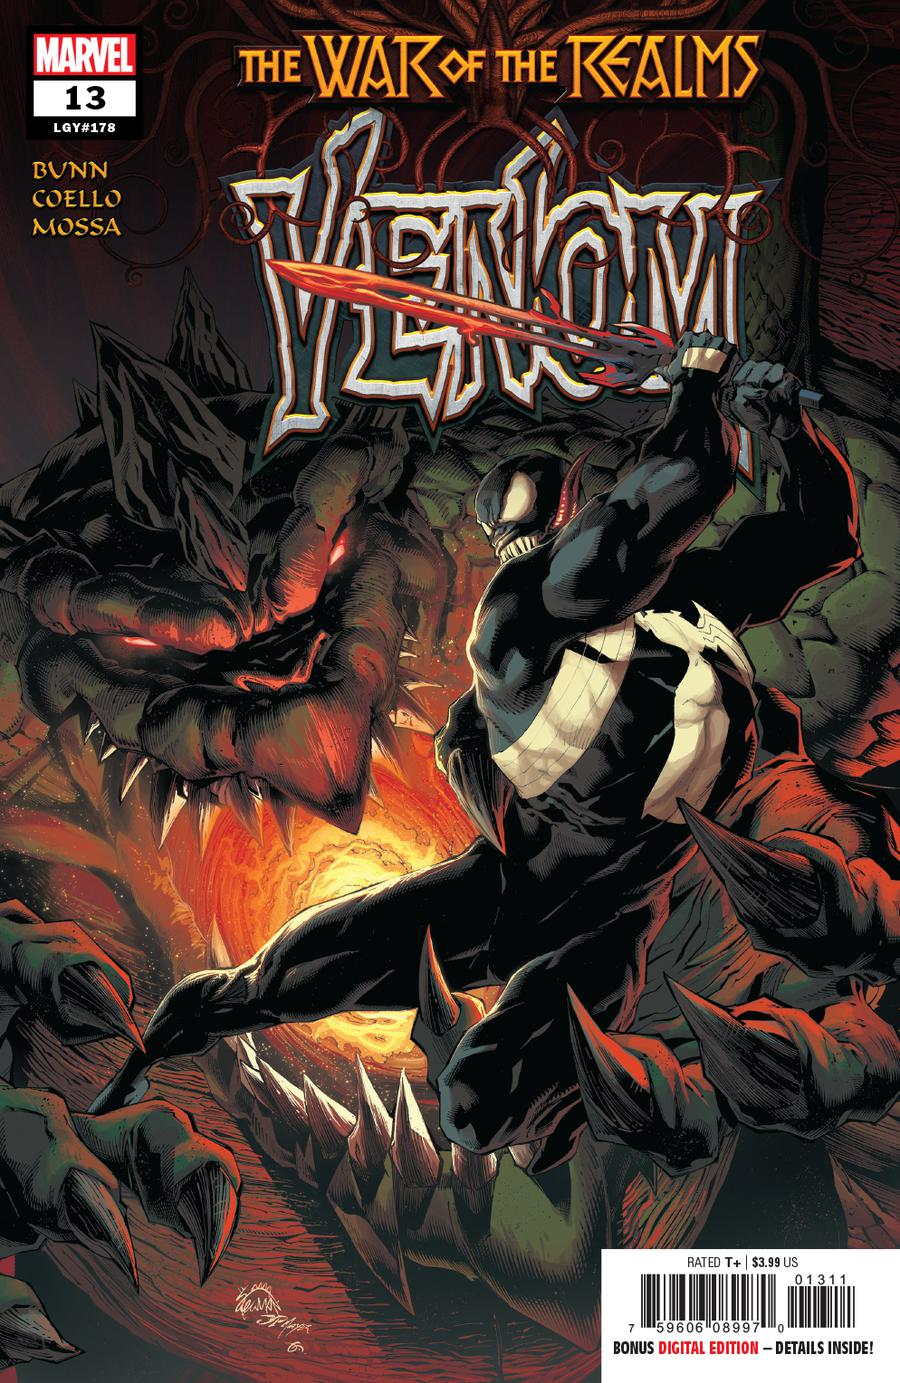 Venom Vol 4 #13 Cover A 1st Ptg Regular Ryan Stegman Cover (War Of The Realms Tie-In)